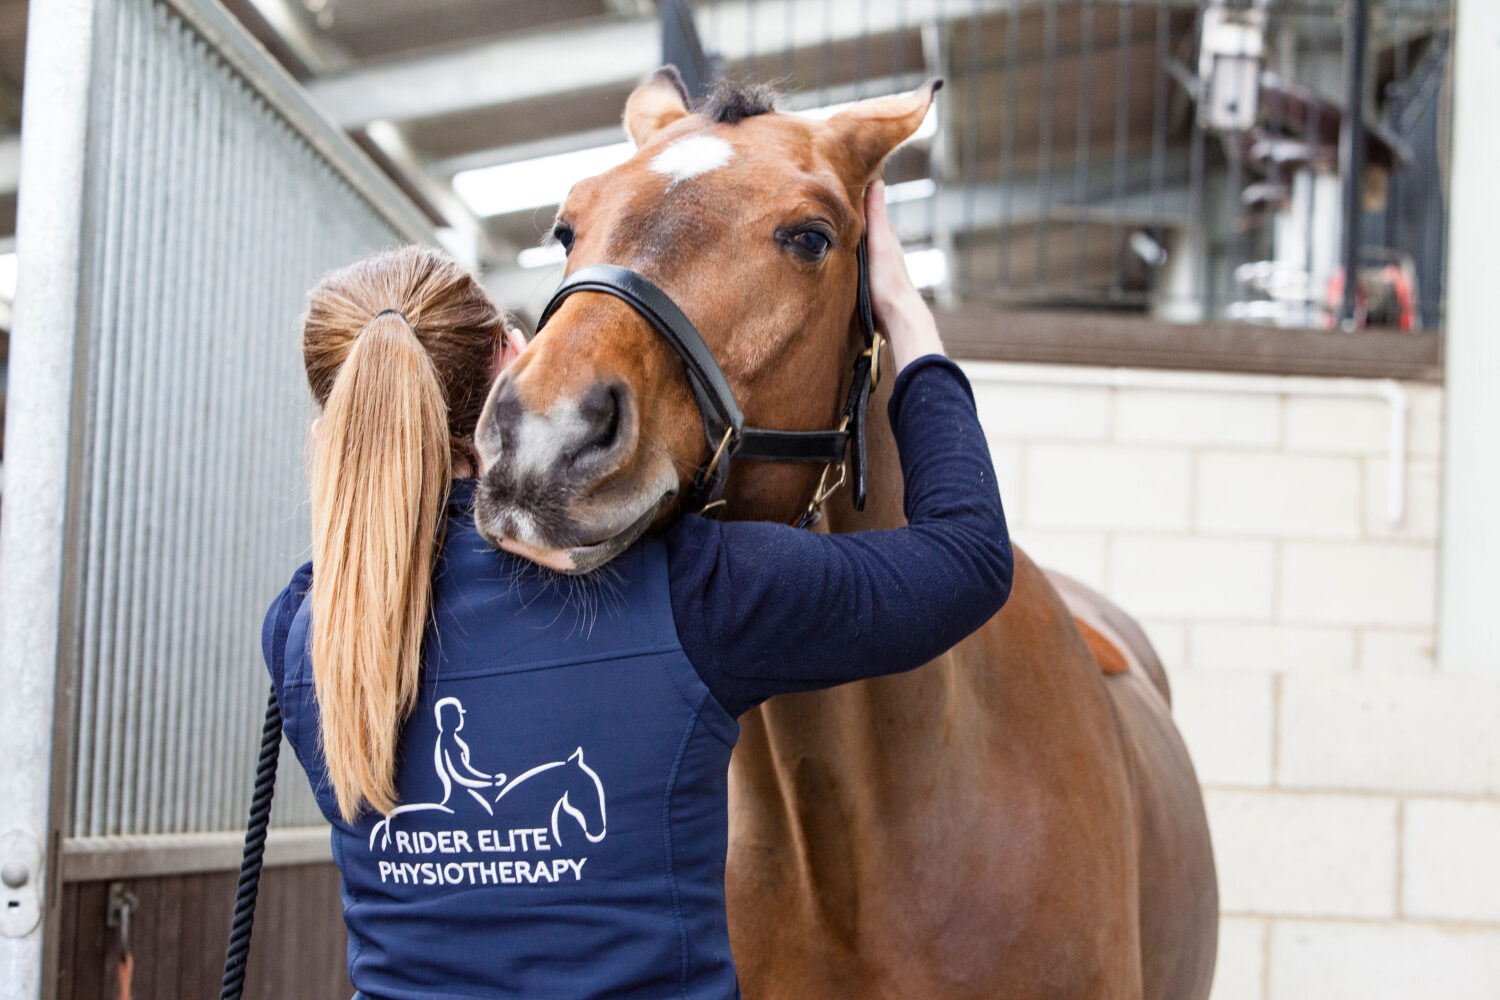 Nikki founder of Rider Elite Physiotherapy at work